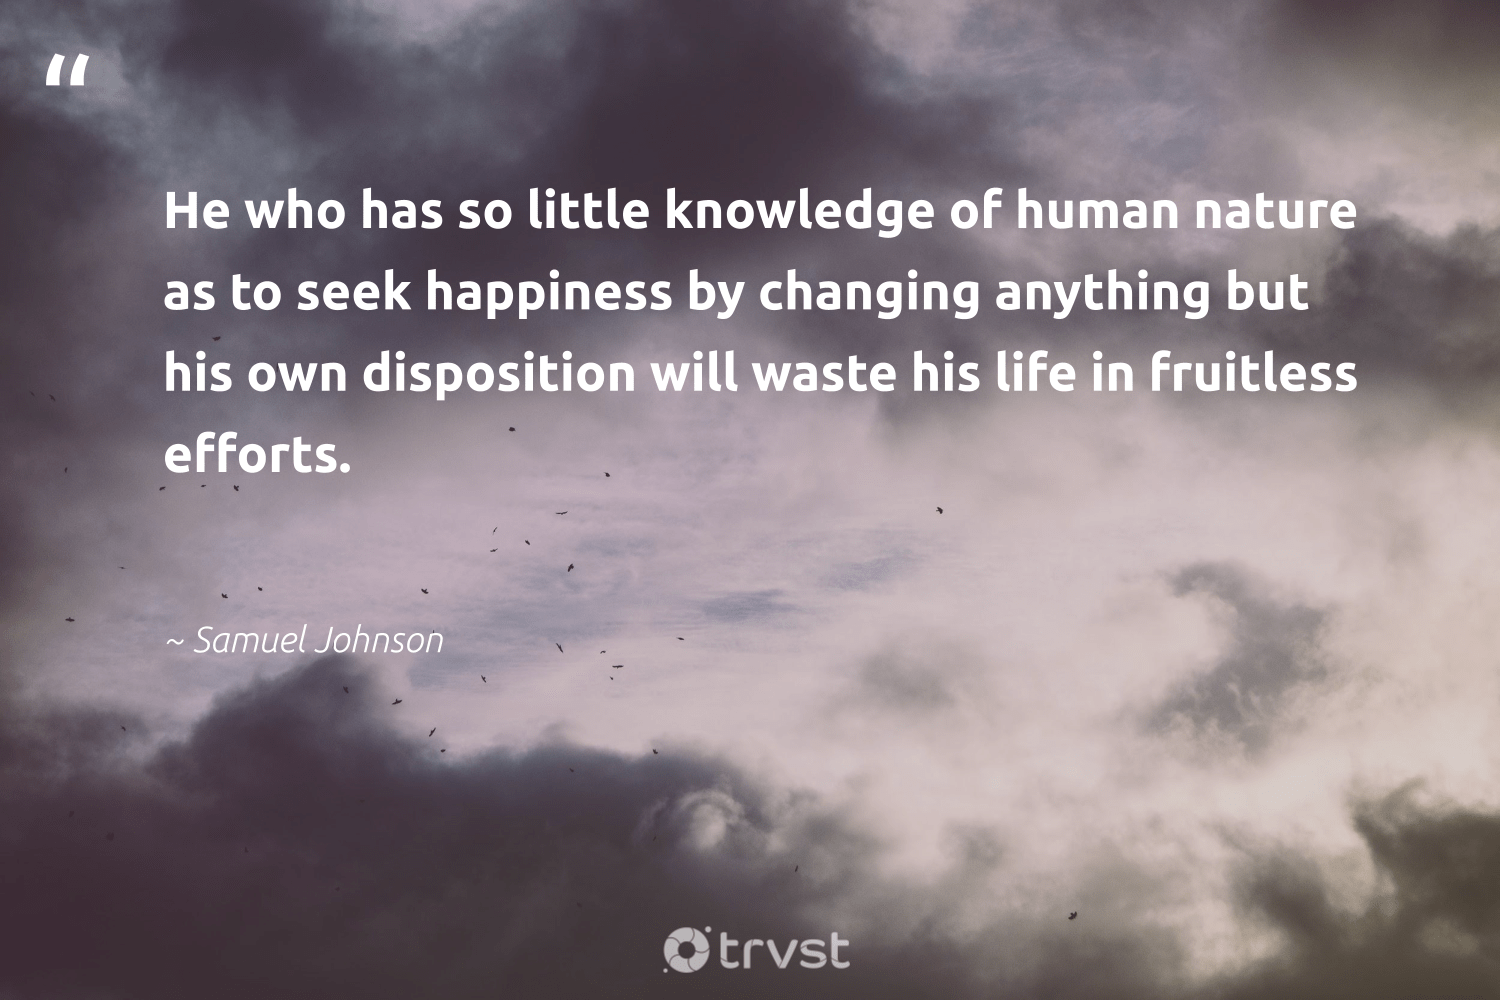 """He who has so little knowledge of human nature as to seek happiness by changing anything but his own disposition will waste his life in fruitless efforts.""  - Samuel Johnson #trvst #quotes #waste #nature #happiness #conservation #nevergiveup #eco #planetearthfirst #earth #health #wildlifeplanet"